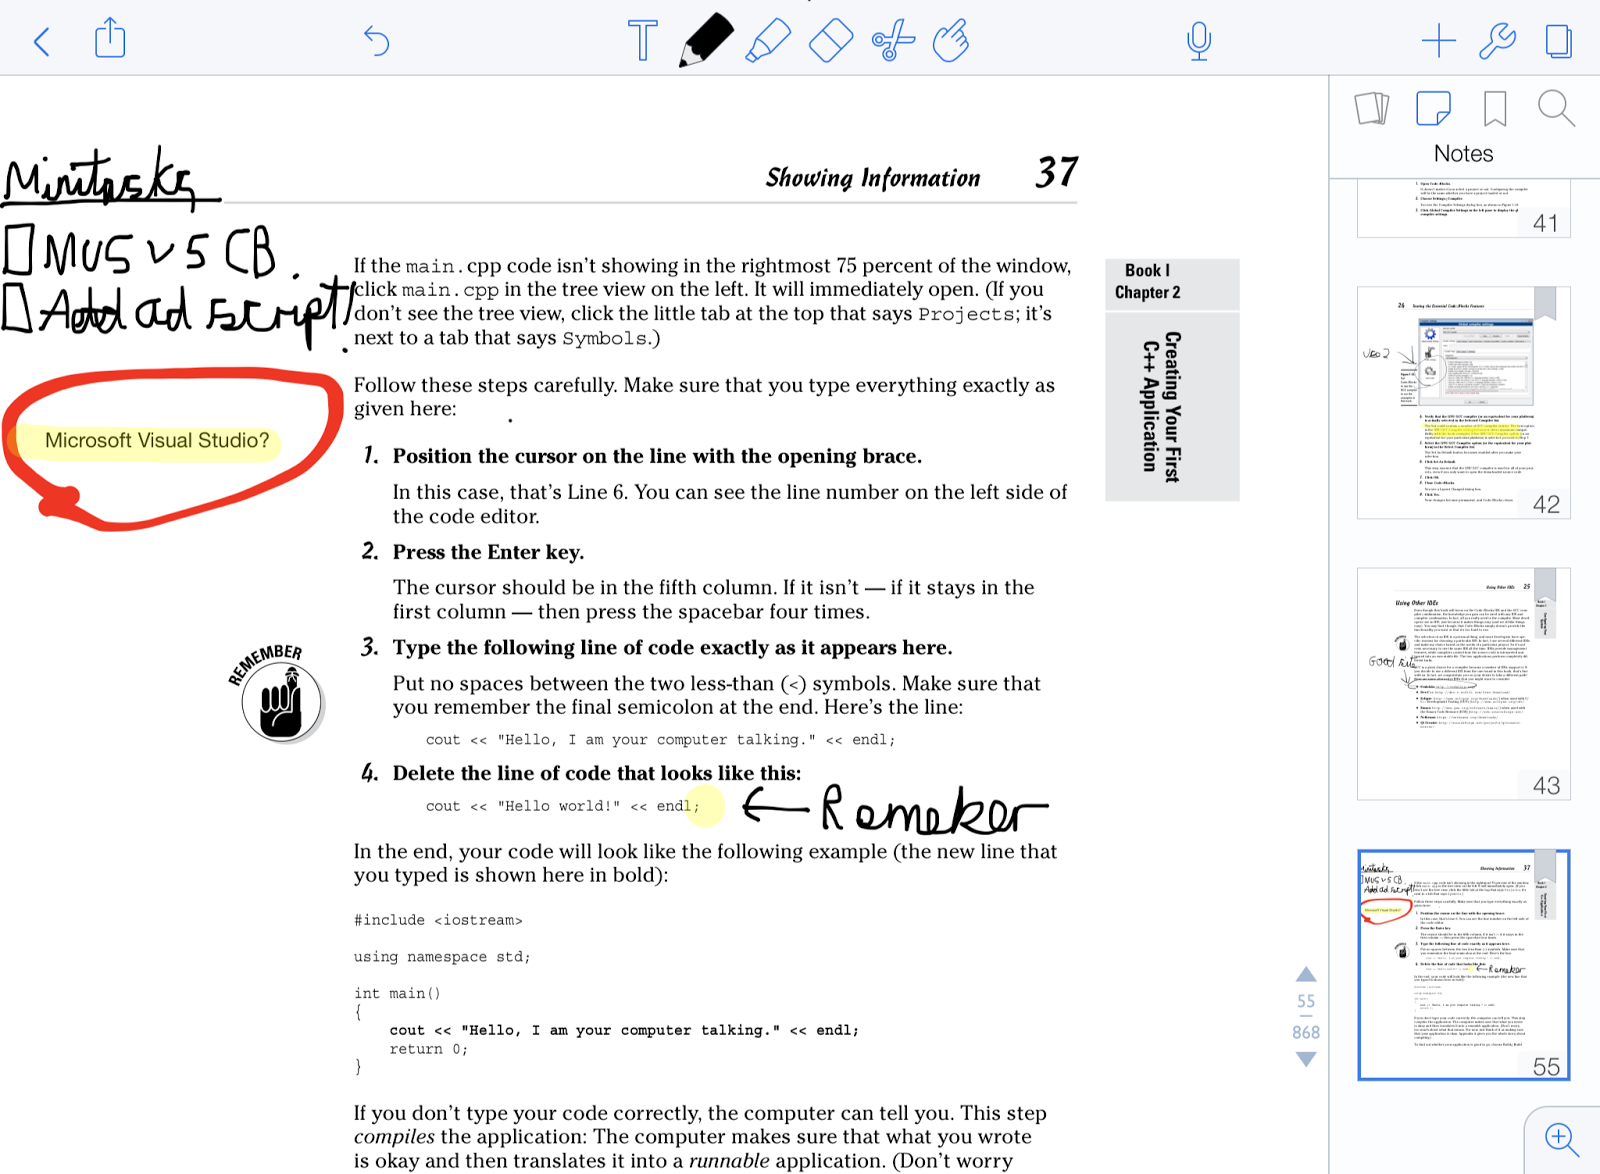 how to delete pages in notability